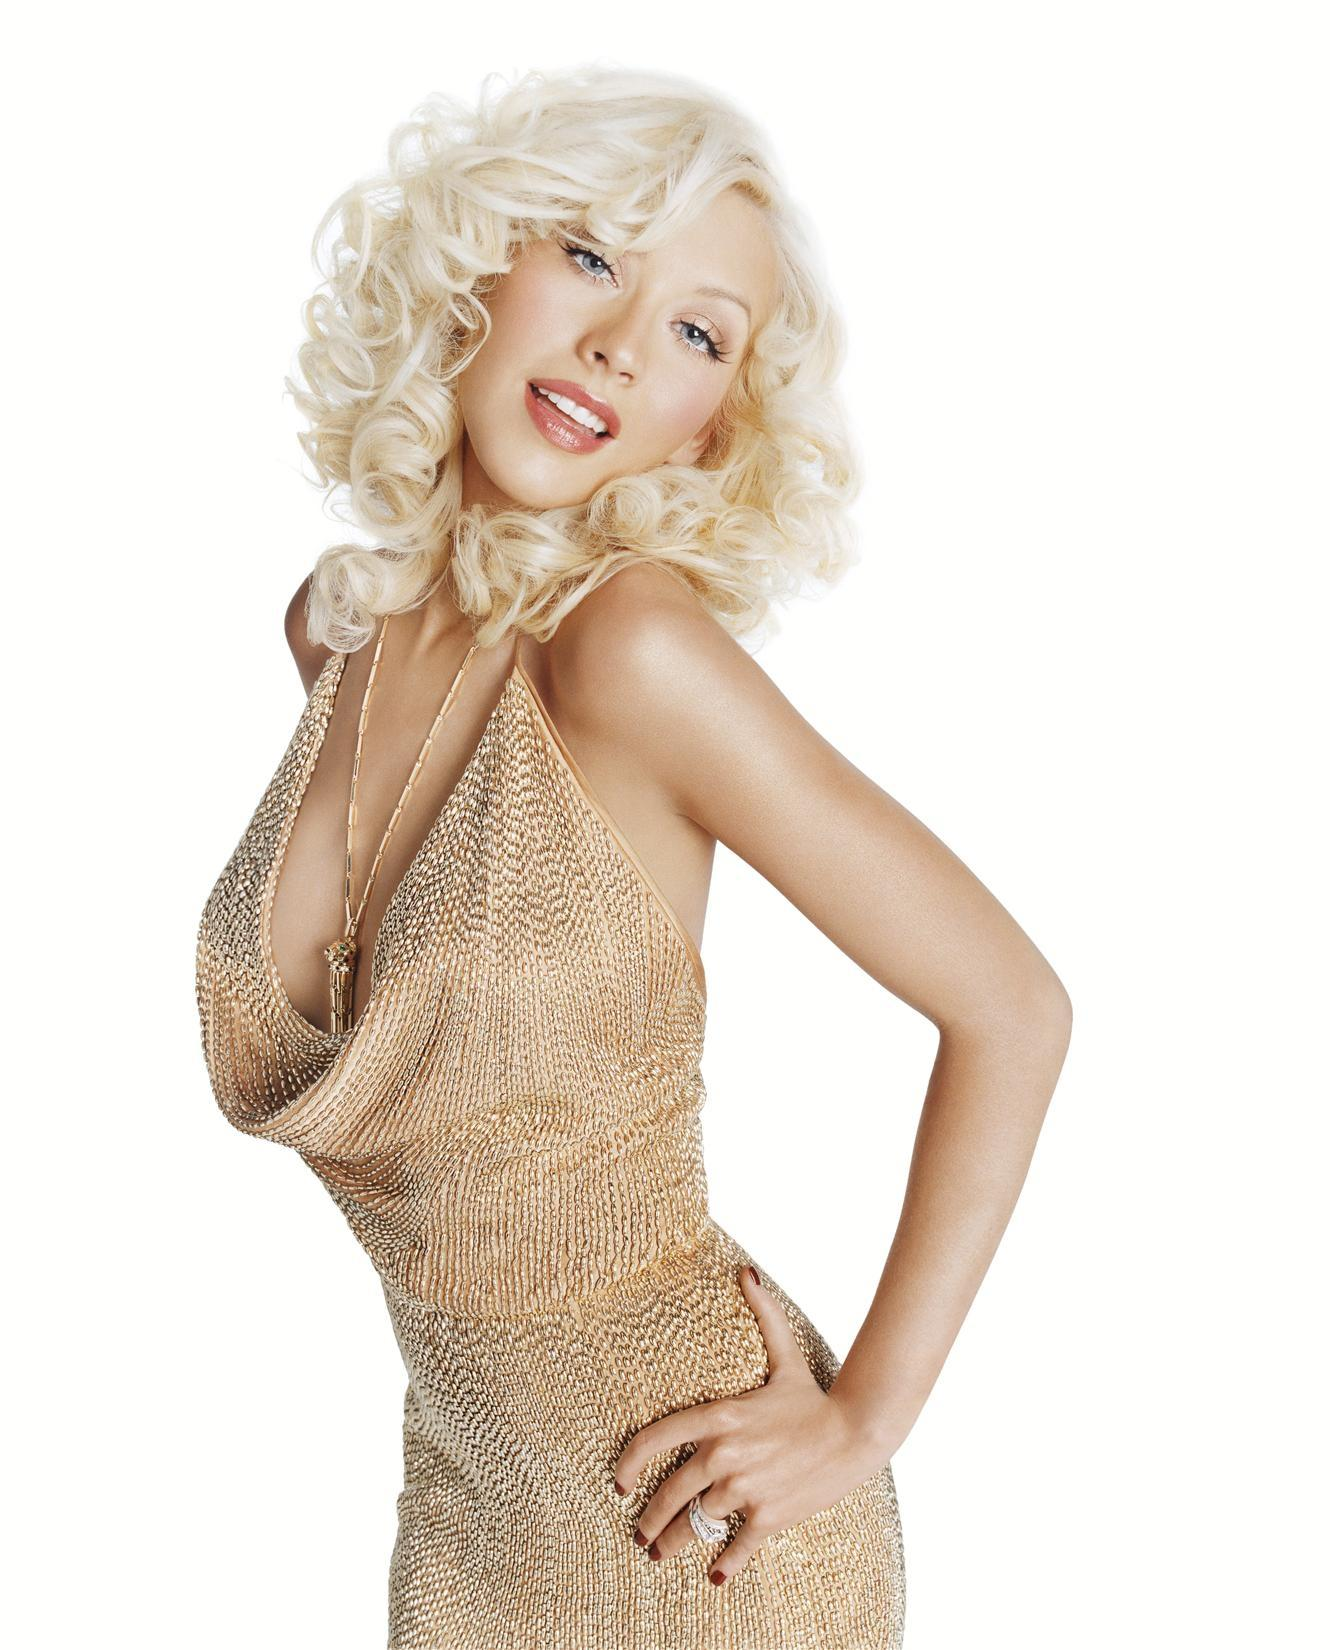 94463_Christina_Aguilera-004084_Carter_Smith_photoshoot_122_1007lo.jpg